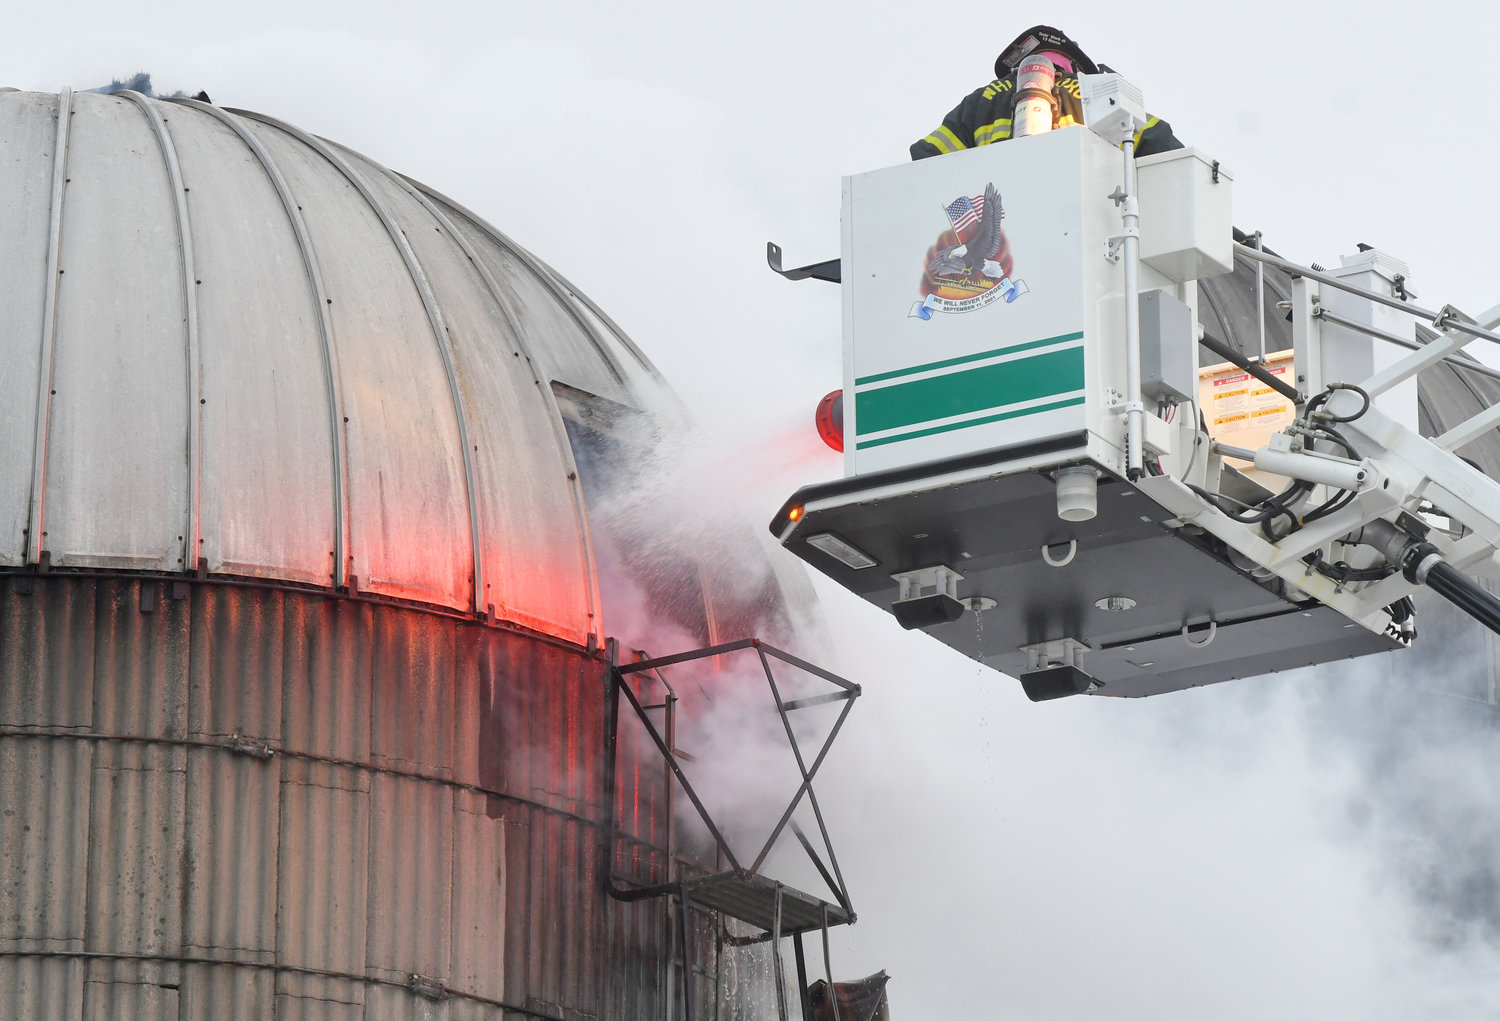 TAKING AIM — Whitesboro firefighters use their ladder truck to get to the top of a silo in Trenton this morning, so they can blast water in through the access hatch.